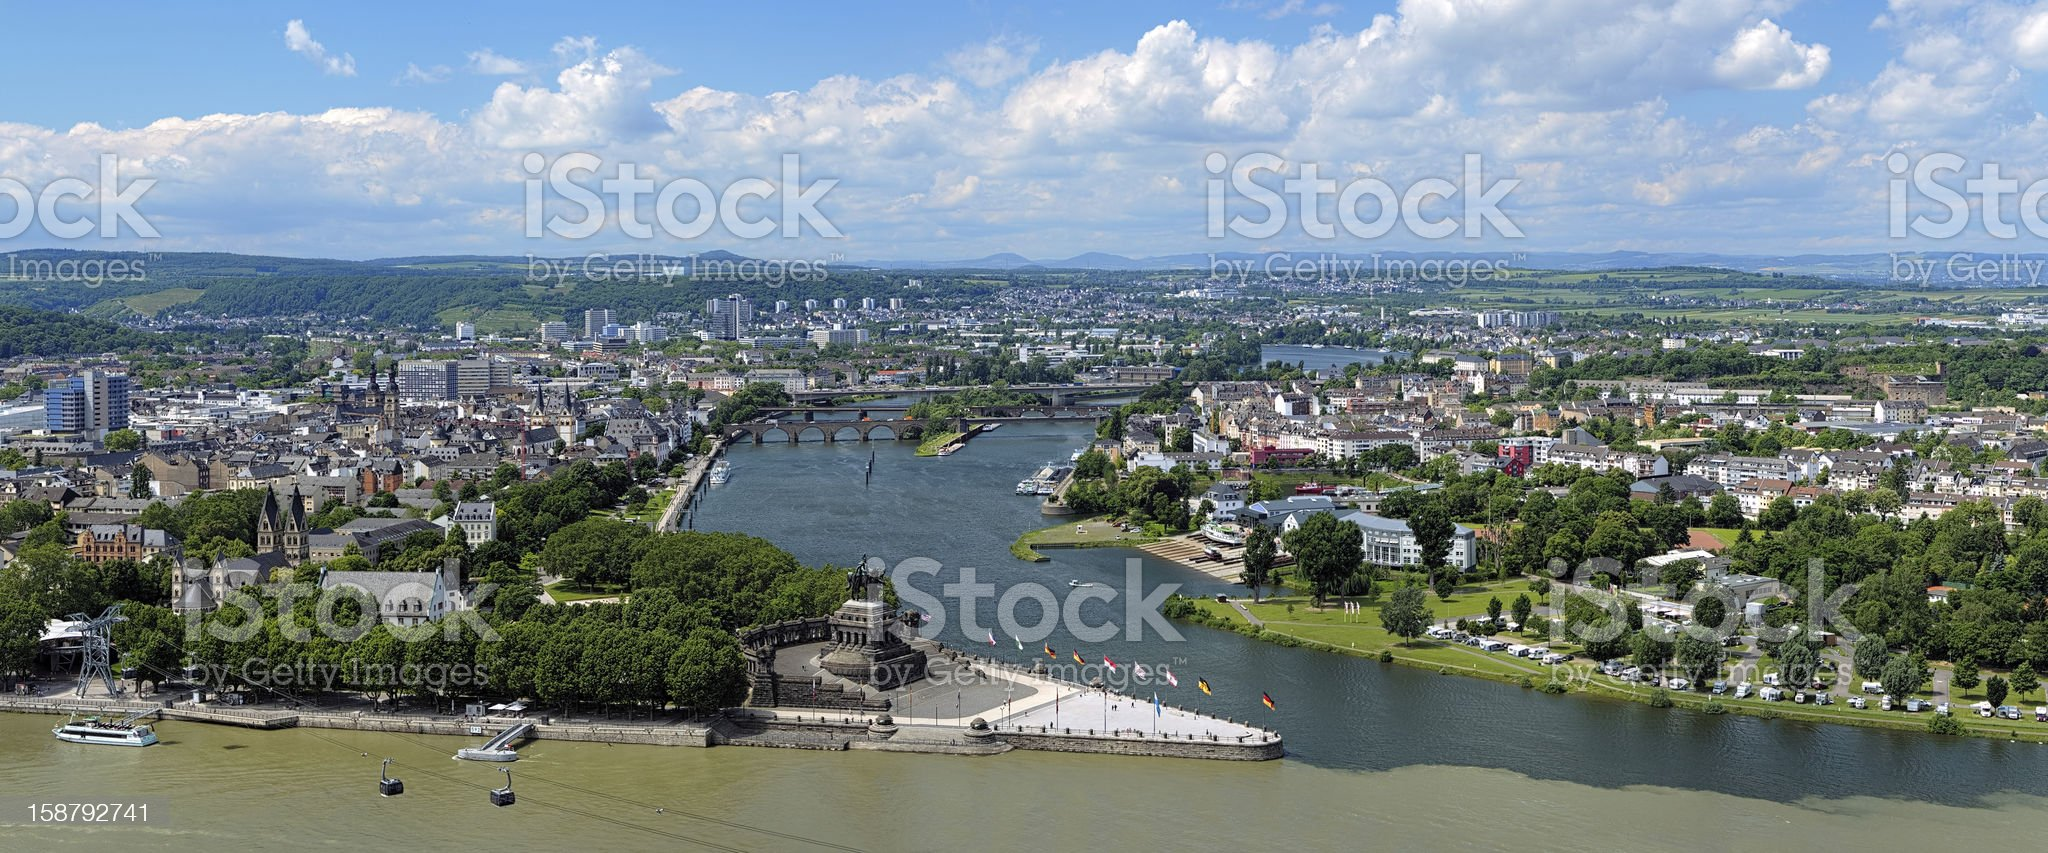 Panorama of Koblenz, Germany royalty-free stock photo